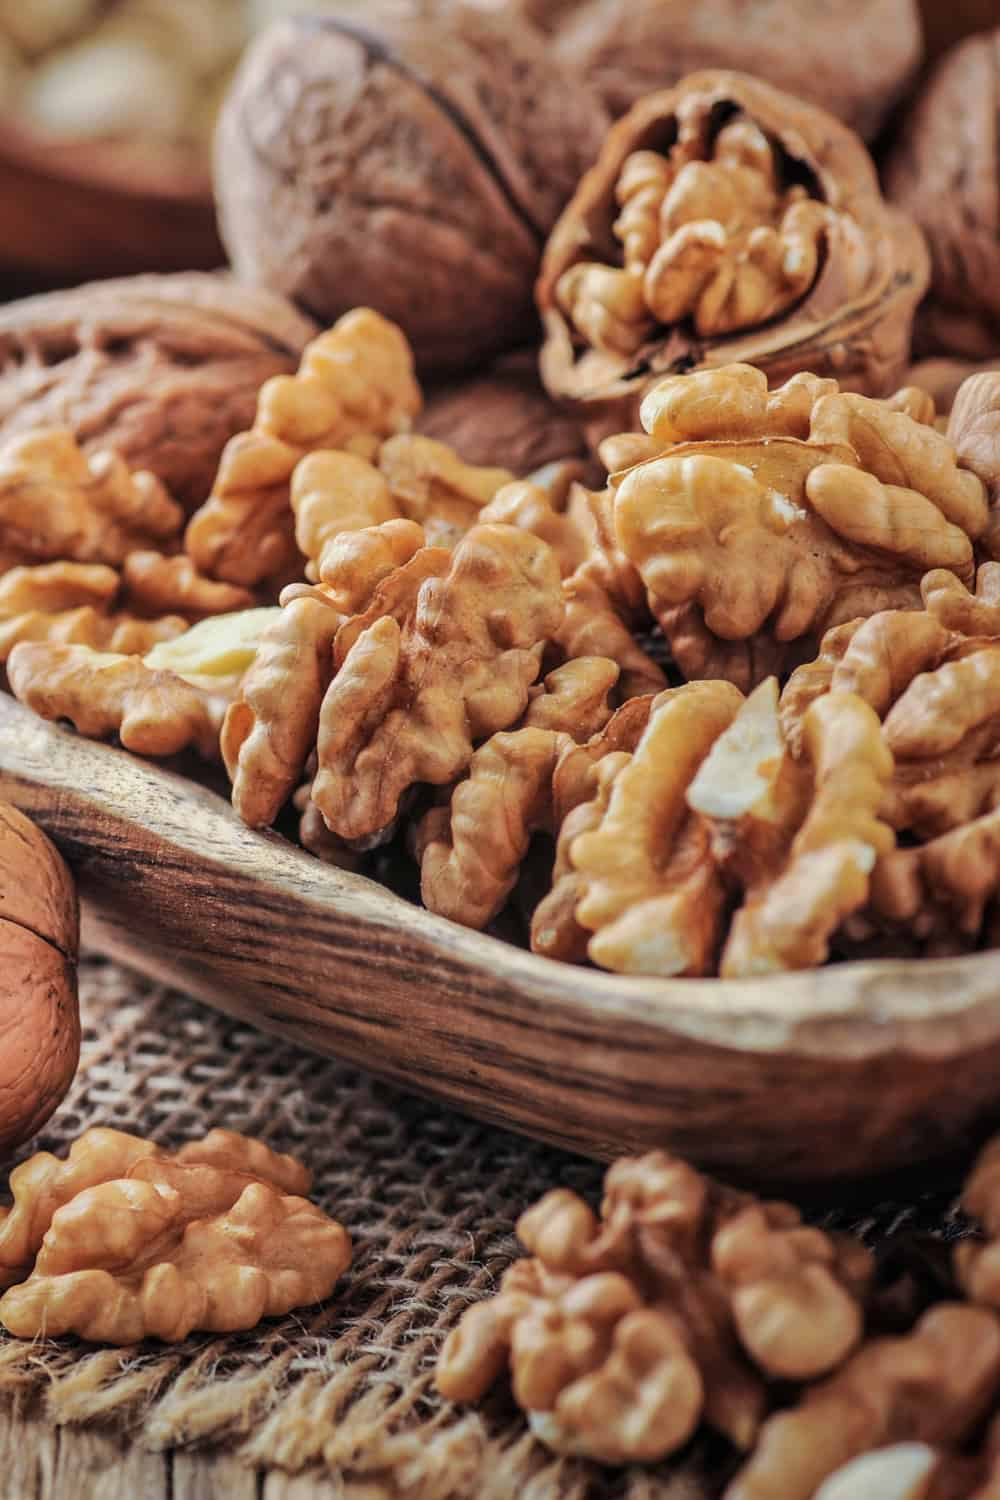 4 Tips to Tell if Walnuts Have Gone Bad